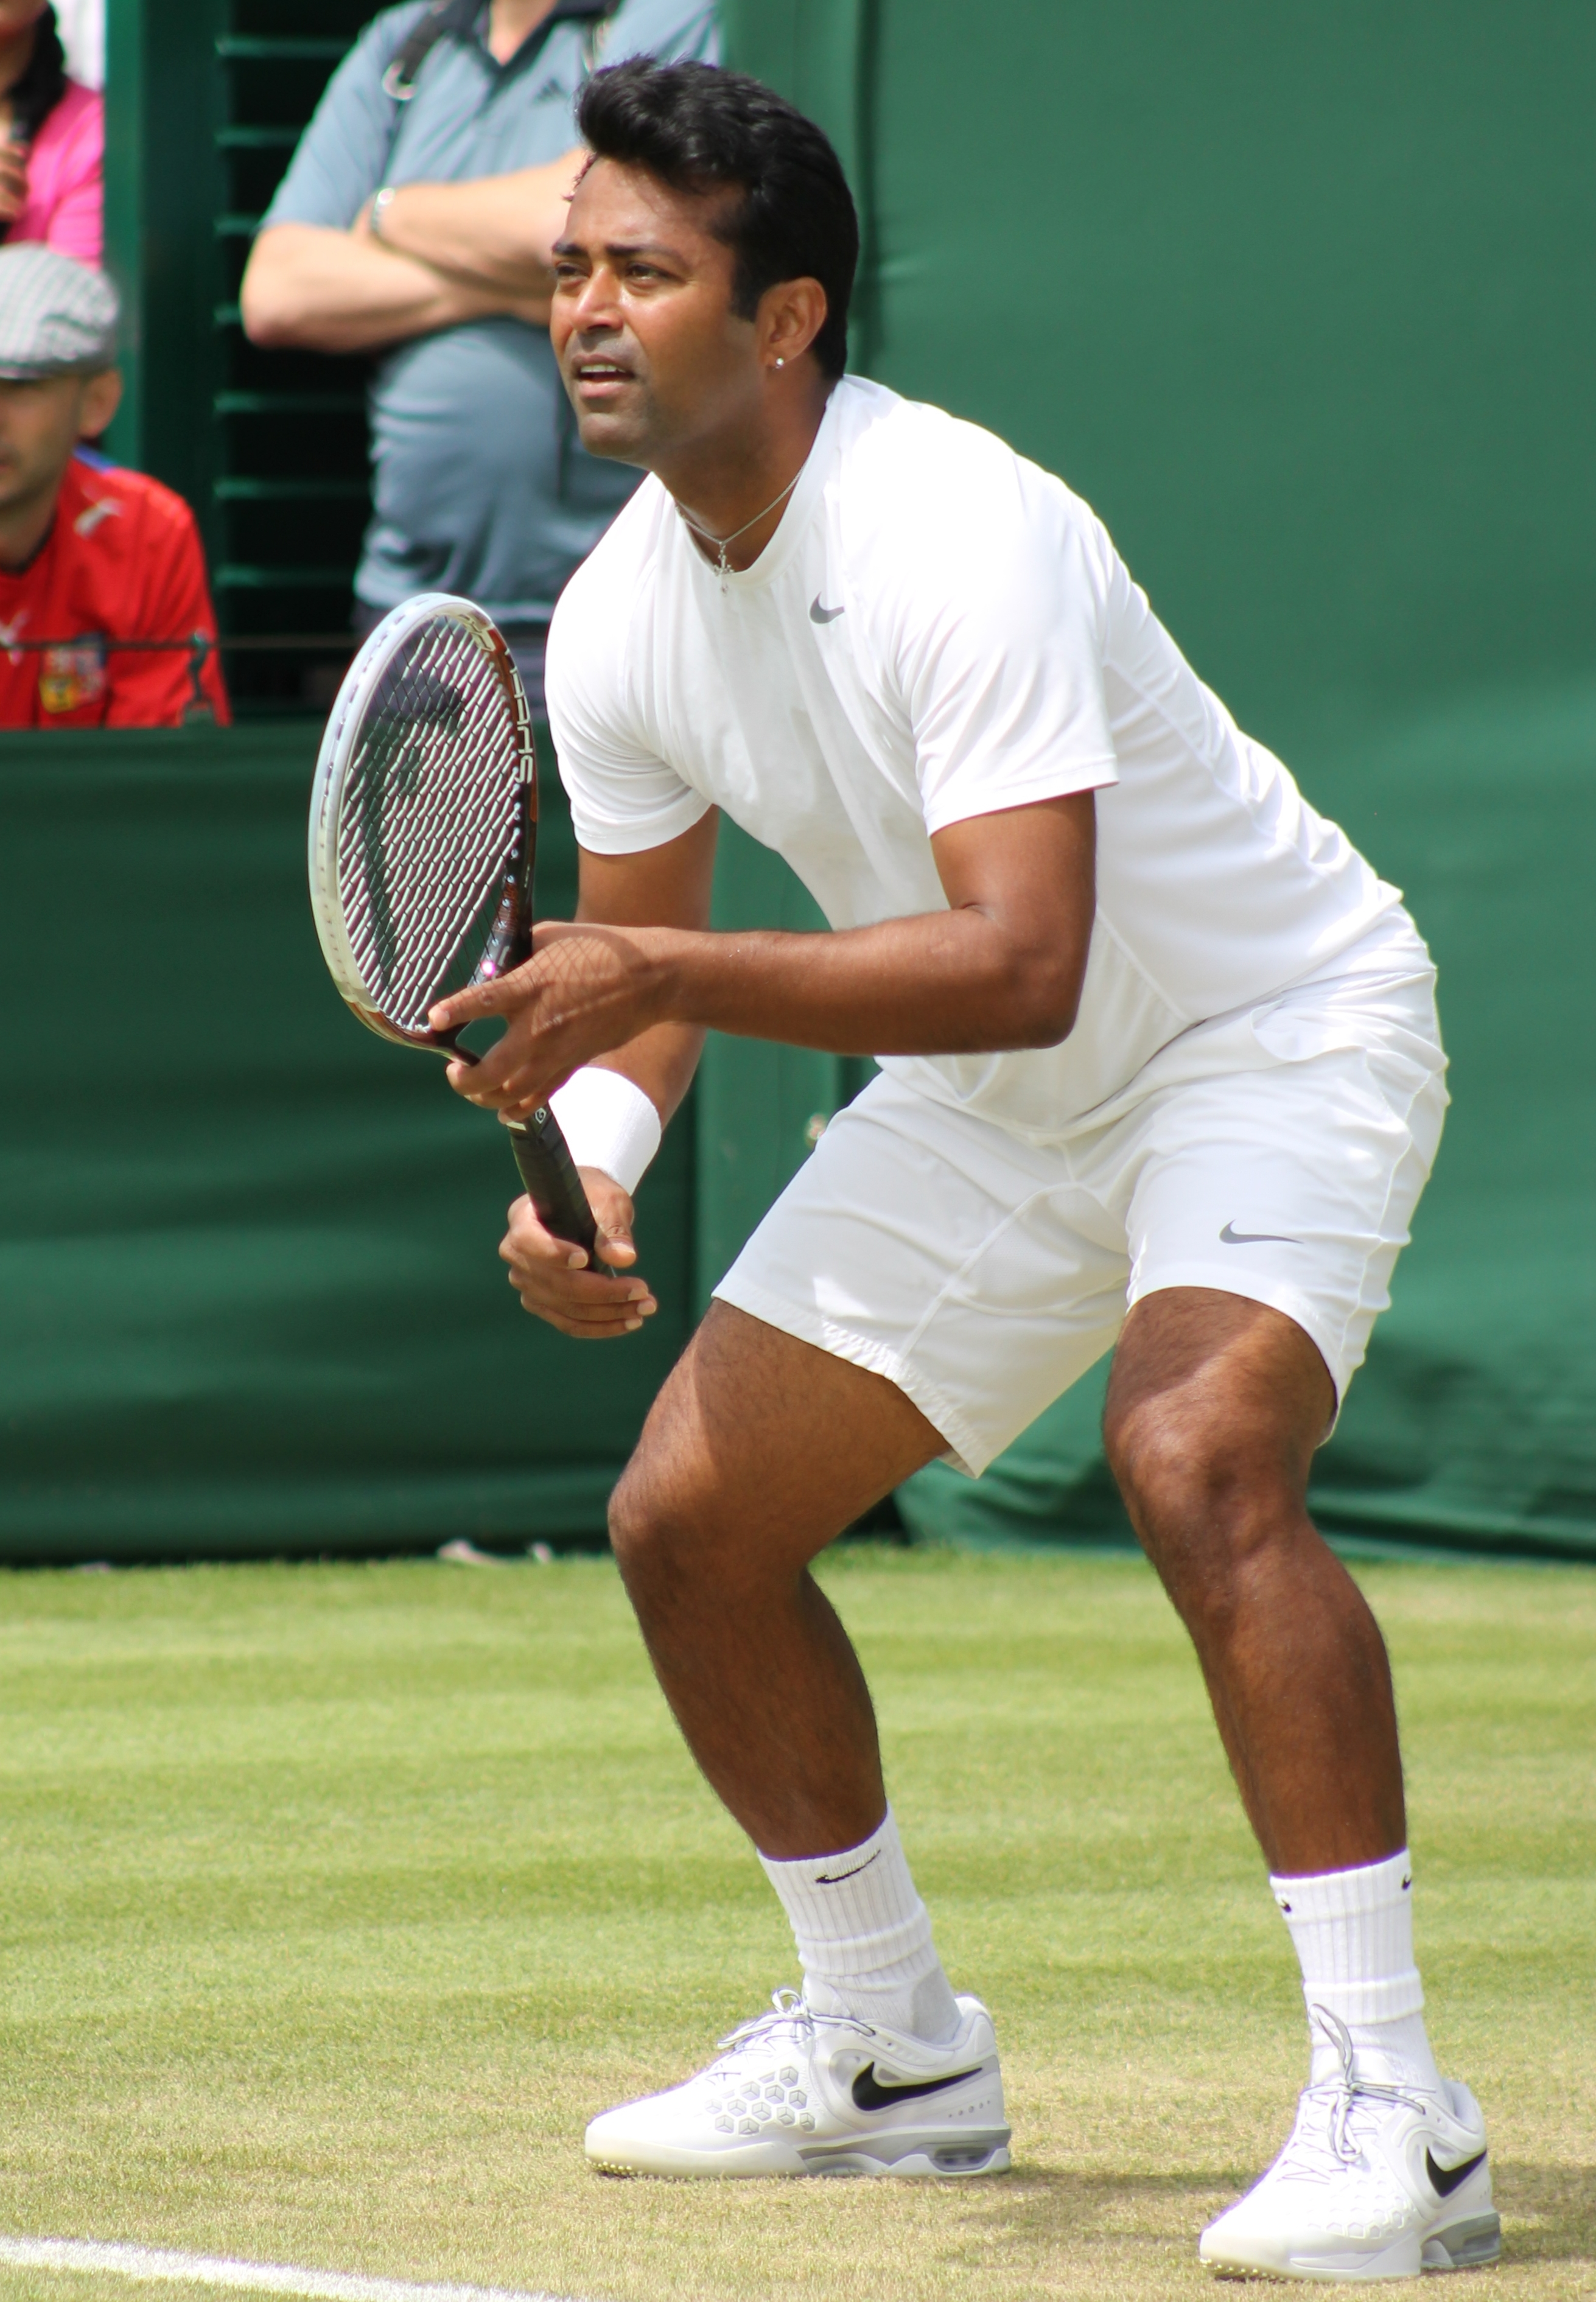 The 45-year old son of father Vece Paes and mother Jennifer Paes Leander Paes in 2019 photo. Leander Paes earned a  million dollar salary - leaving the net worth at 8 million in 2019